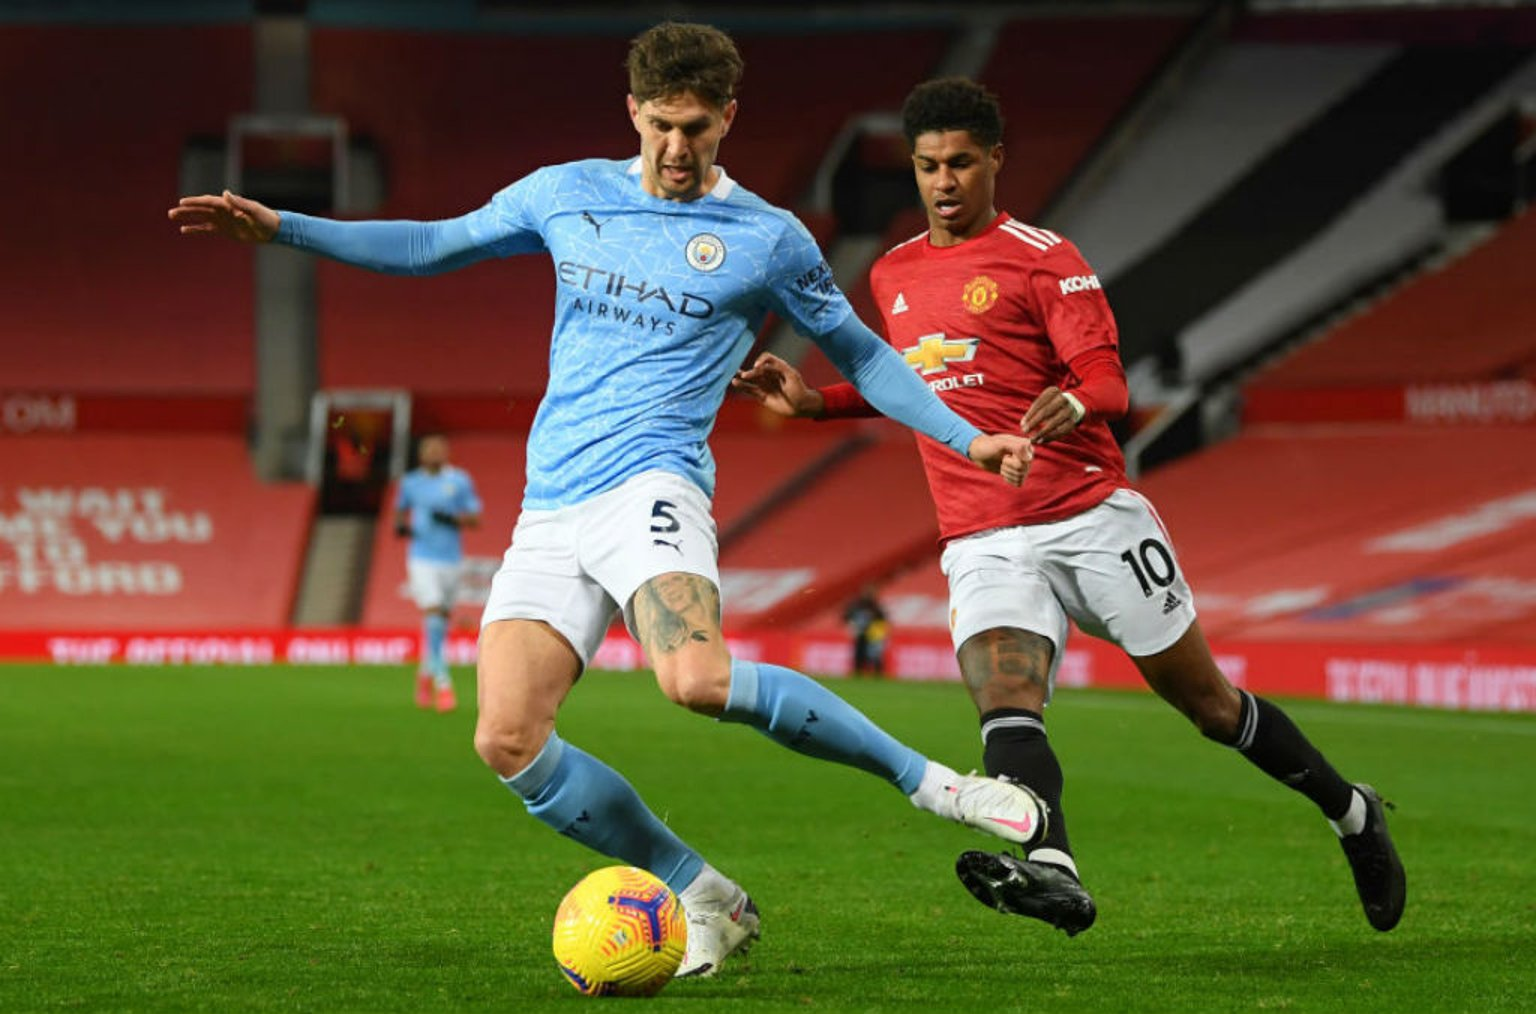 CENTRE OF ATTENTION: John Stones snuffs out the threat of Marcus Rashford